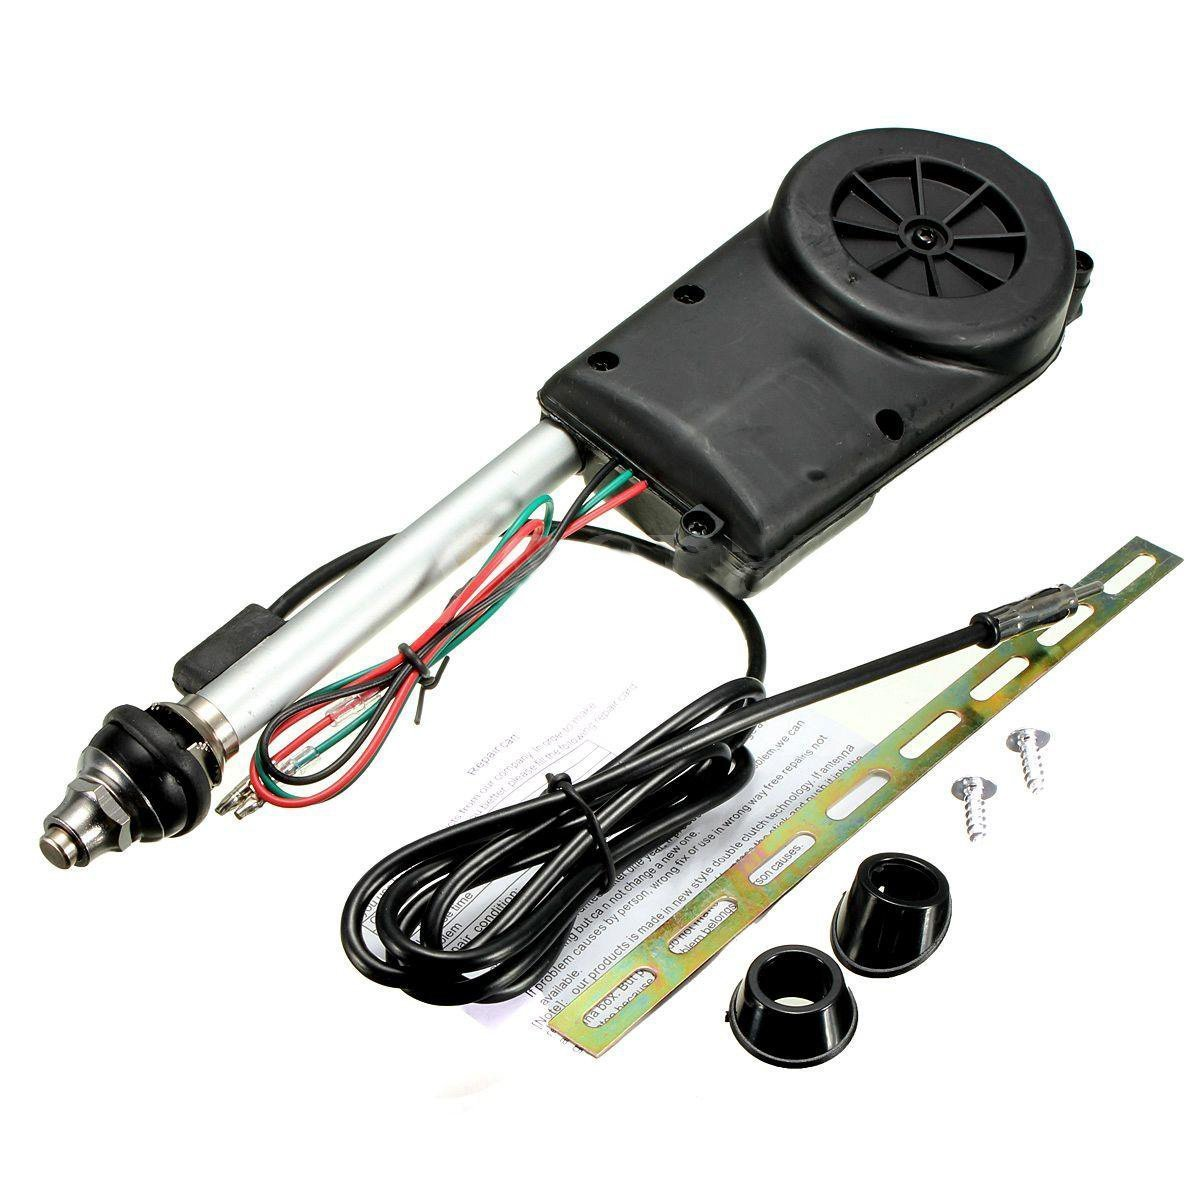 Amazon.com: Antenna Kit - SODIAL(R) Car Electric Aerial Radio Automatic Booster Power Antenna Kit Black: Automotive